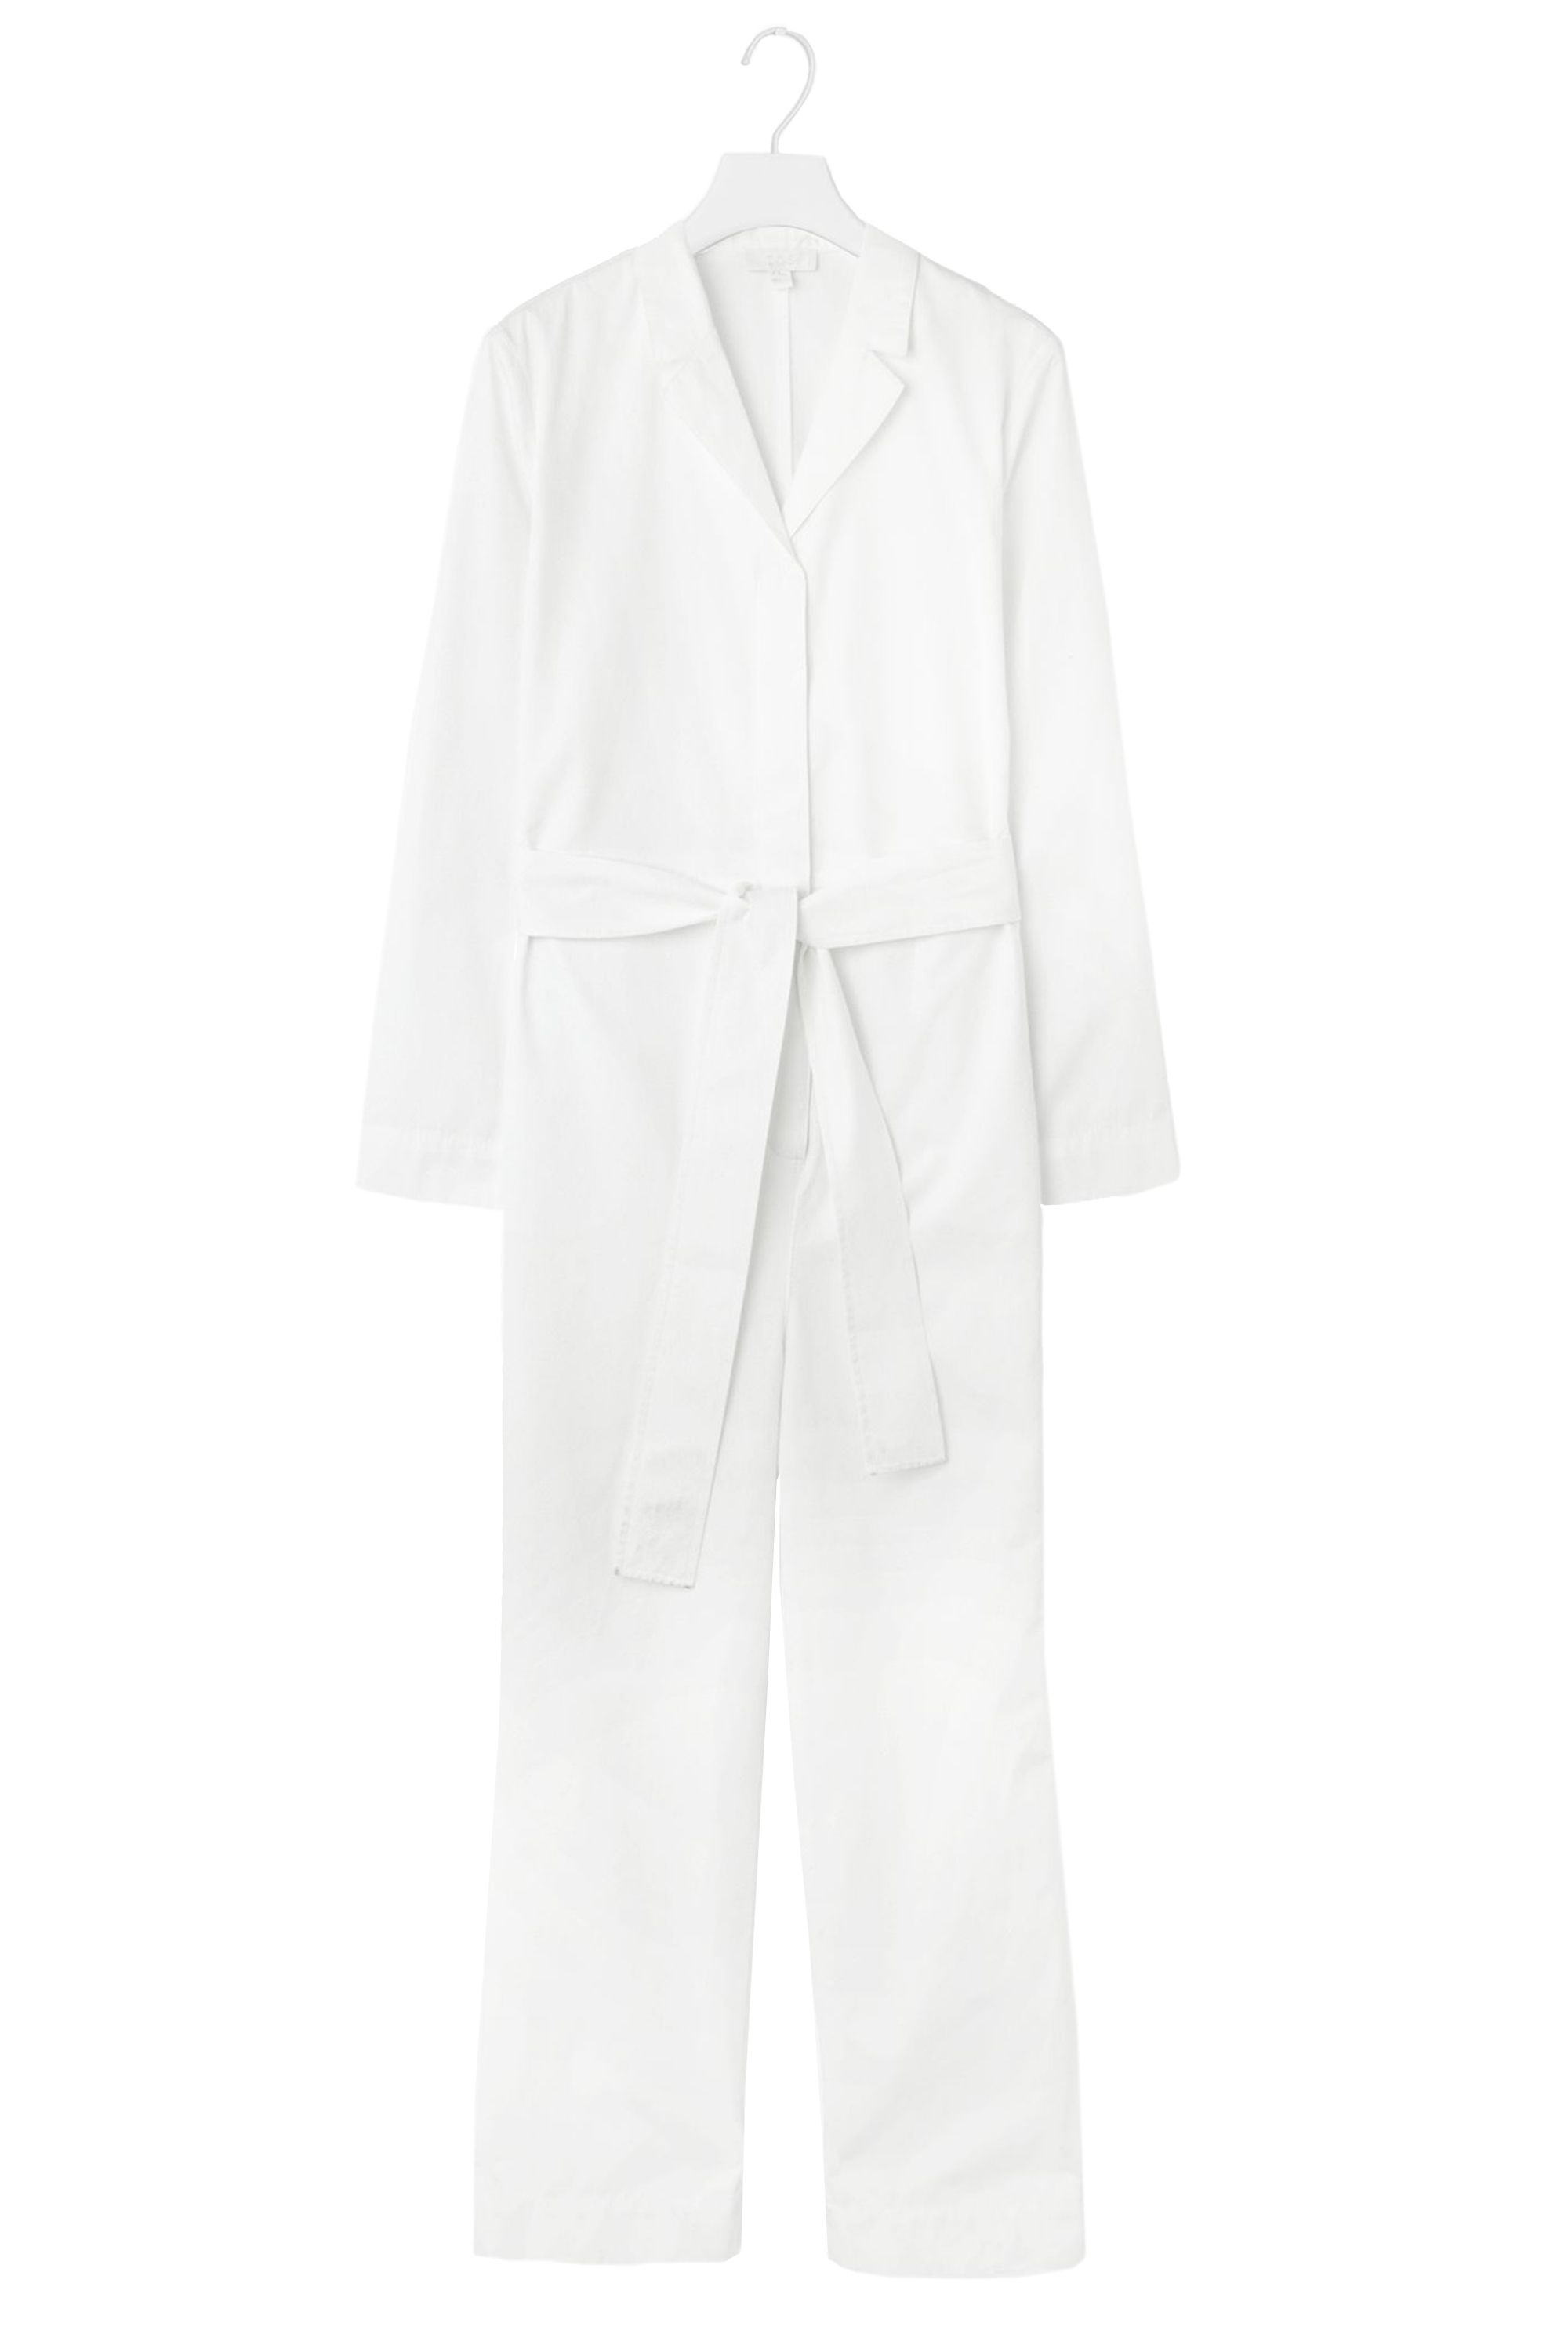 "<p>Cos Belted Boiler Suits, $175; <a href=""http://www.cosstores.com/us/Women/Jumpsuits/Belted_boiler_suit/18543104-20438776.1#c-15133331"" target=""_blank"">cosstores.com</a></p>"